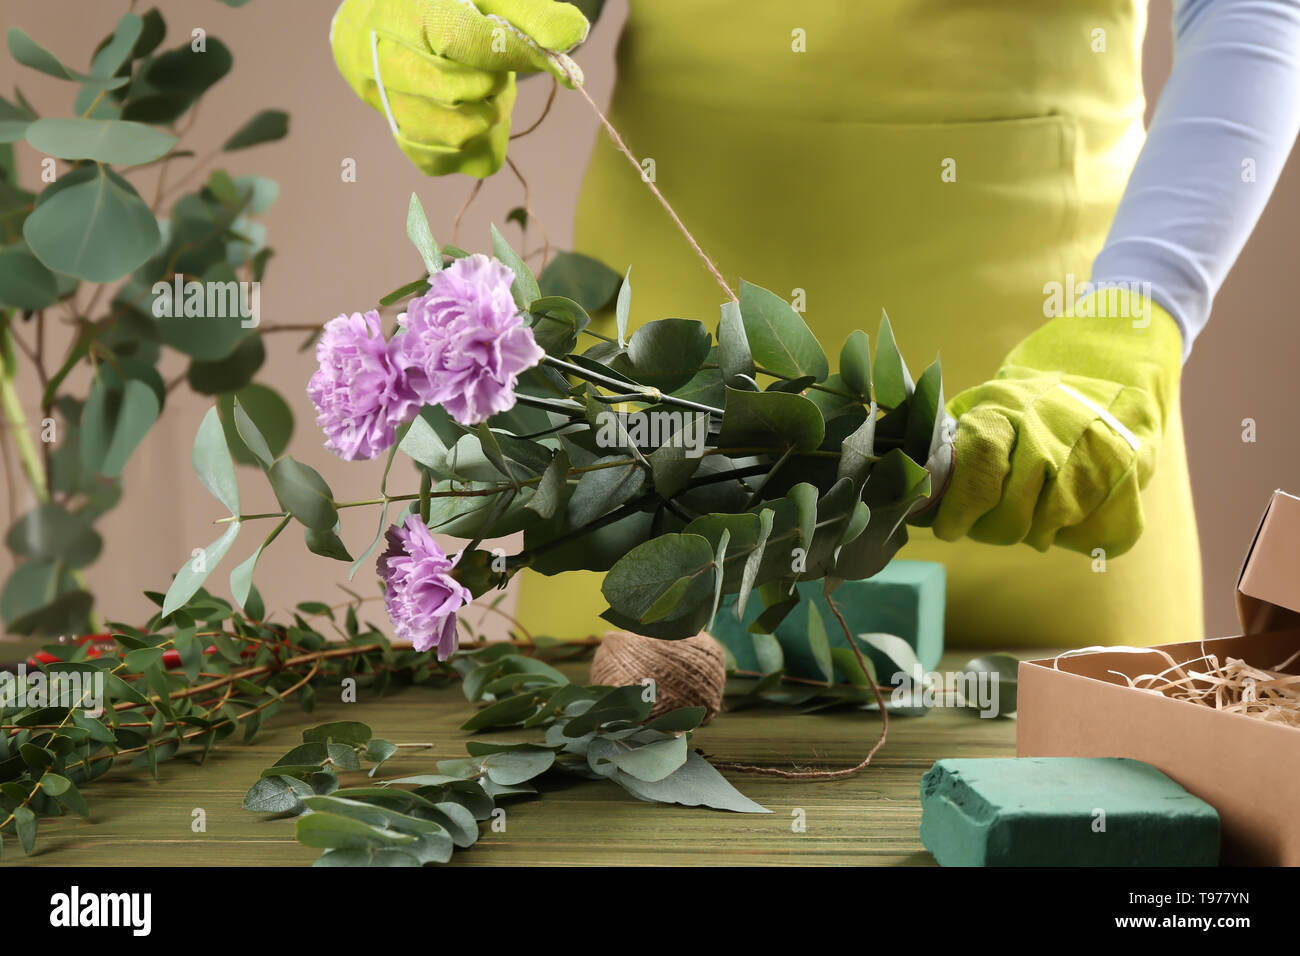 Florist making beautiful bouquet at wooden table - Stock Image